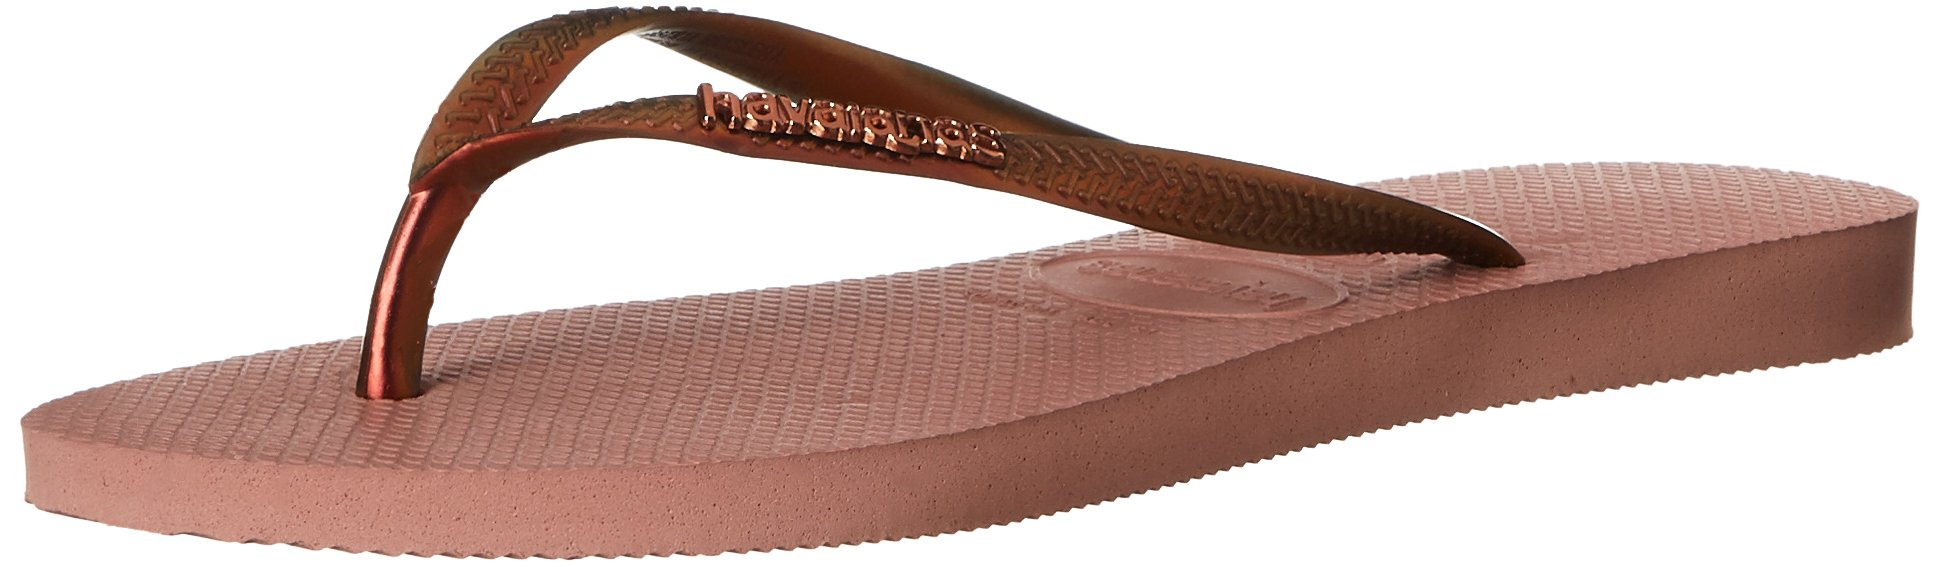 Havaianas Women's You Flip Flop, Crocus Rose, 41 BR/11/12 M US